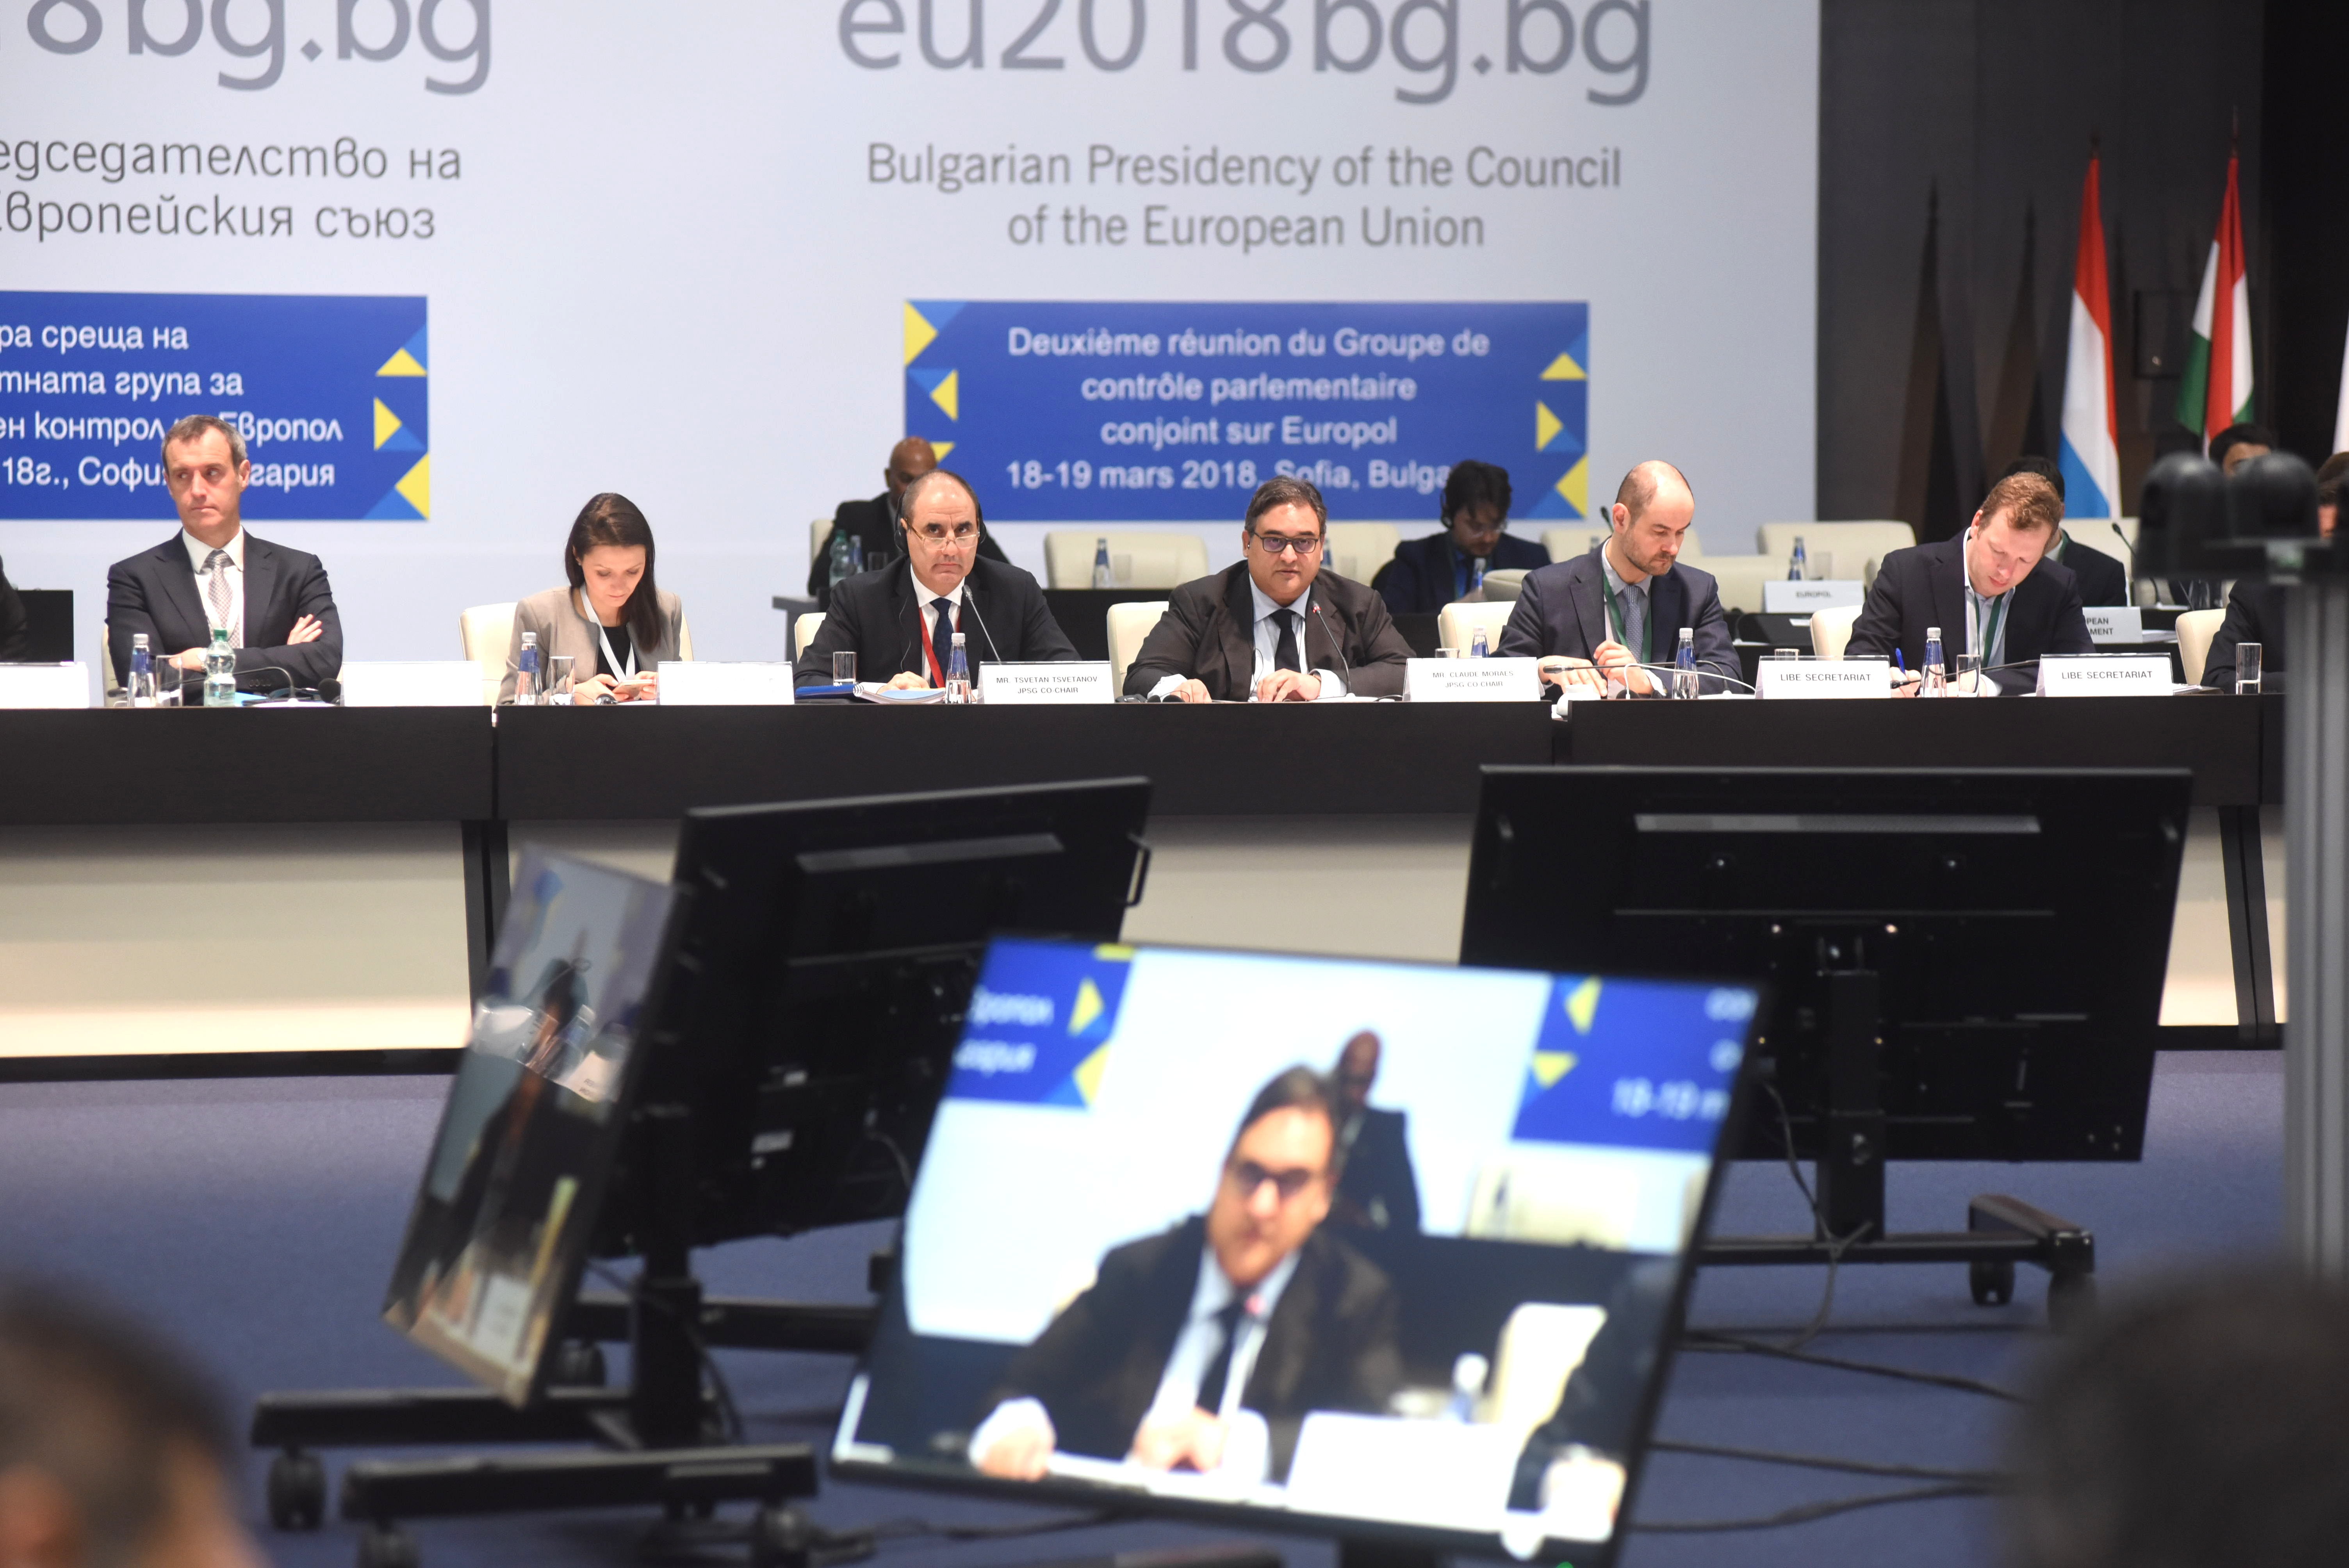 The Rules of Procedure of the Joint Parliamentary Scrutiny Group on Europol (JPSG) have been adopted at the Meeting of JPSG